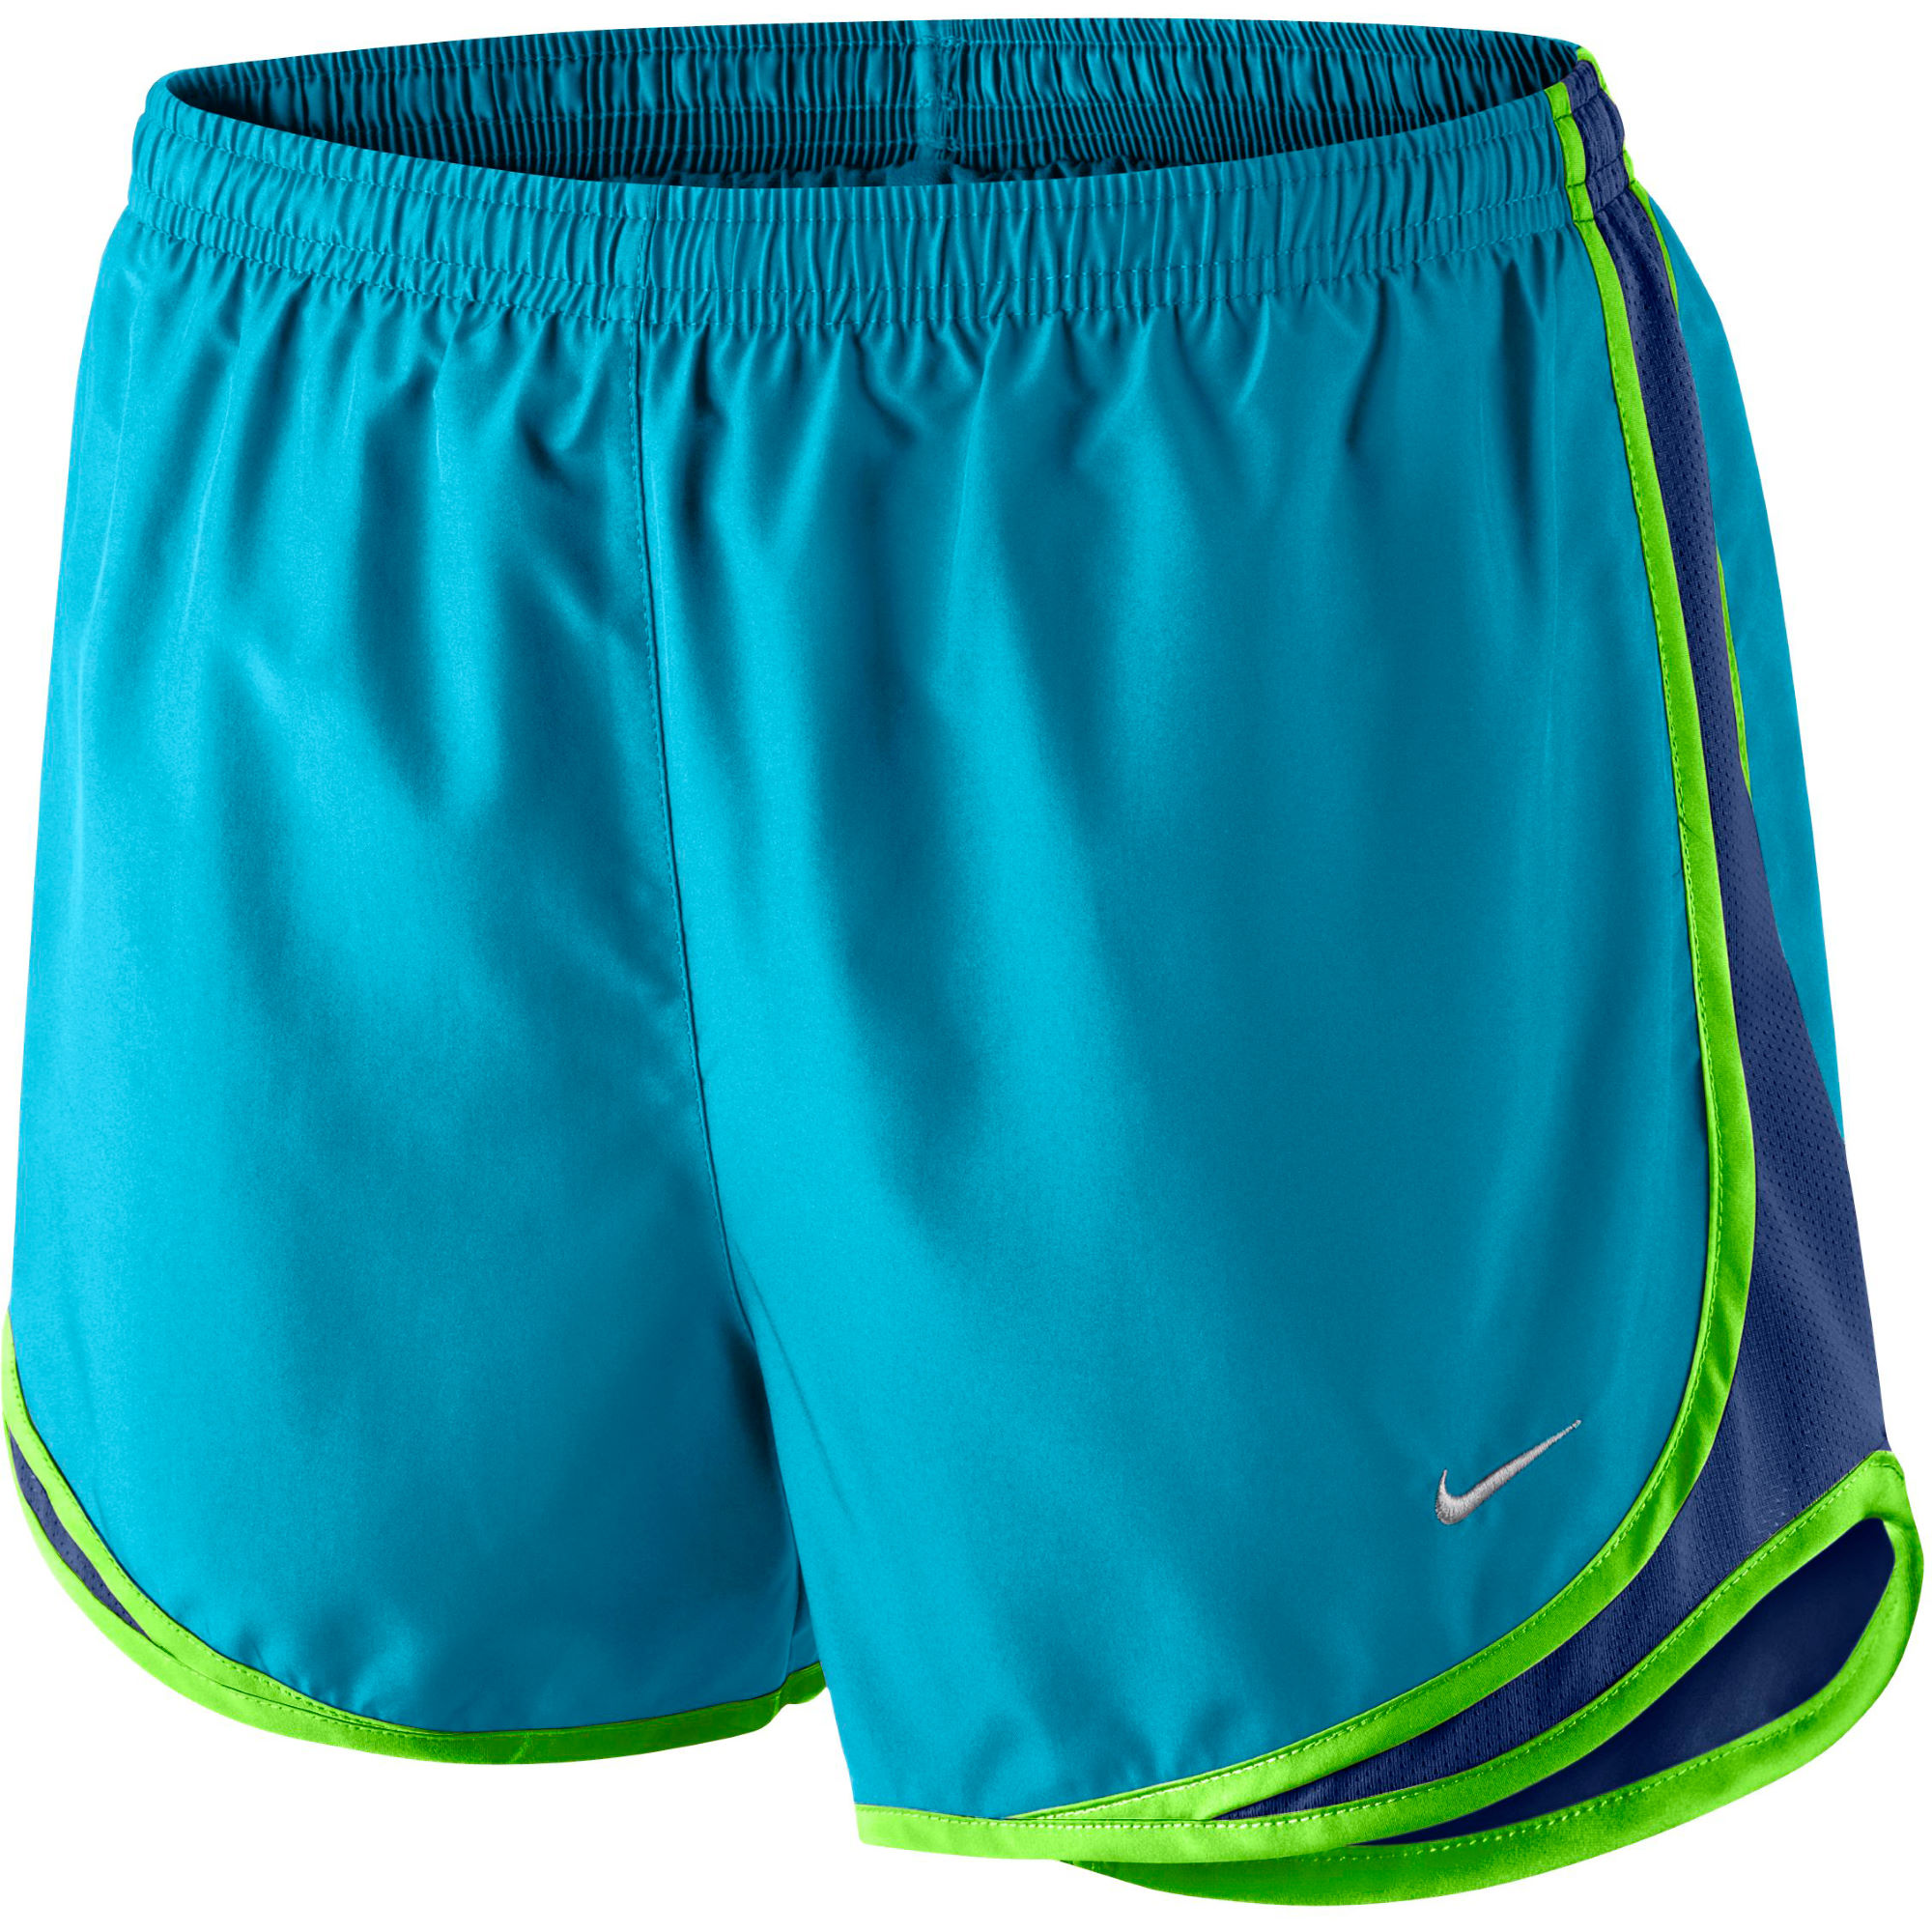 Nike womens running shorts with liner - Nike Women S Tempo Short Sp15